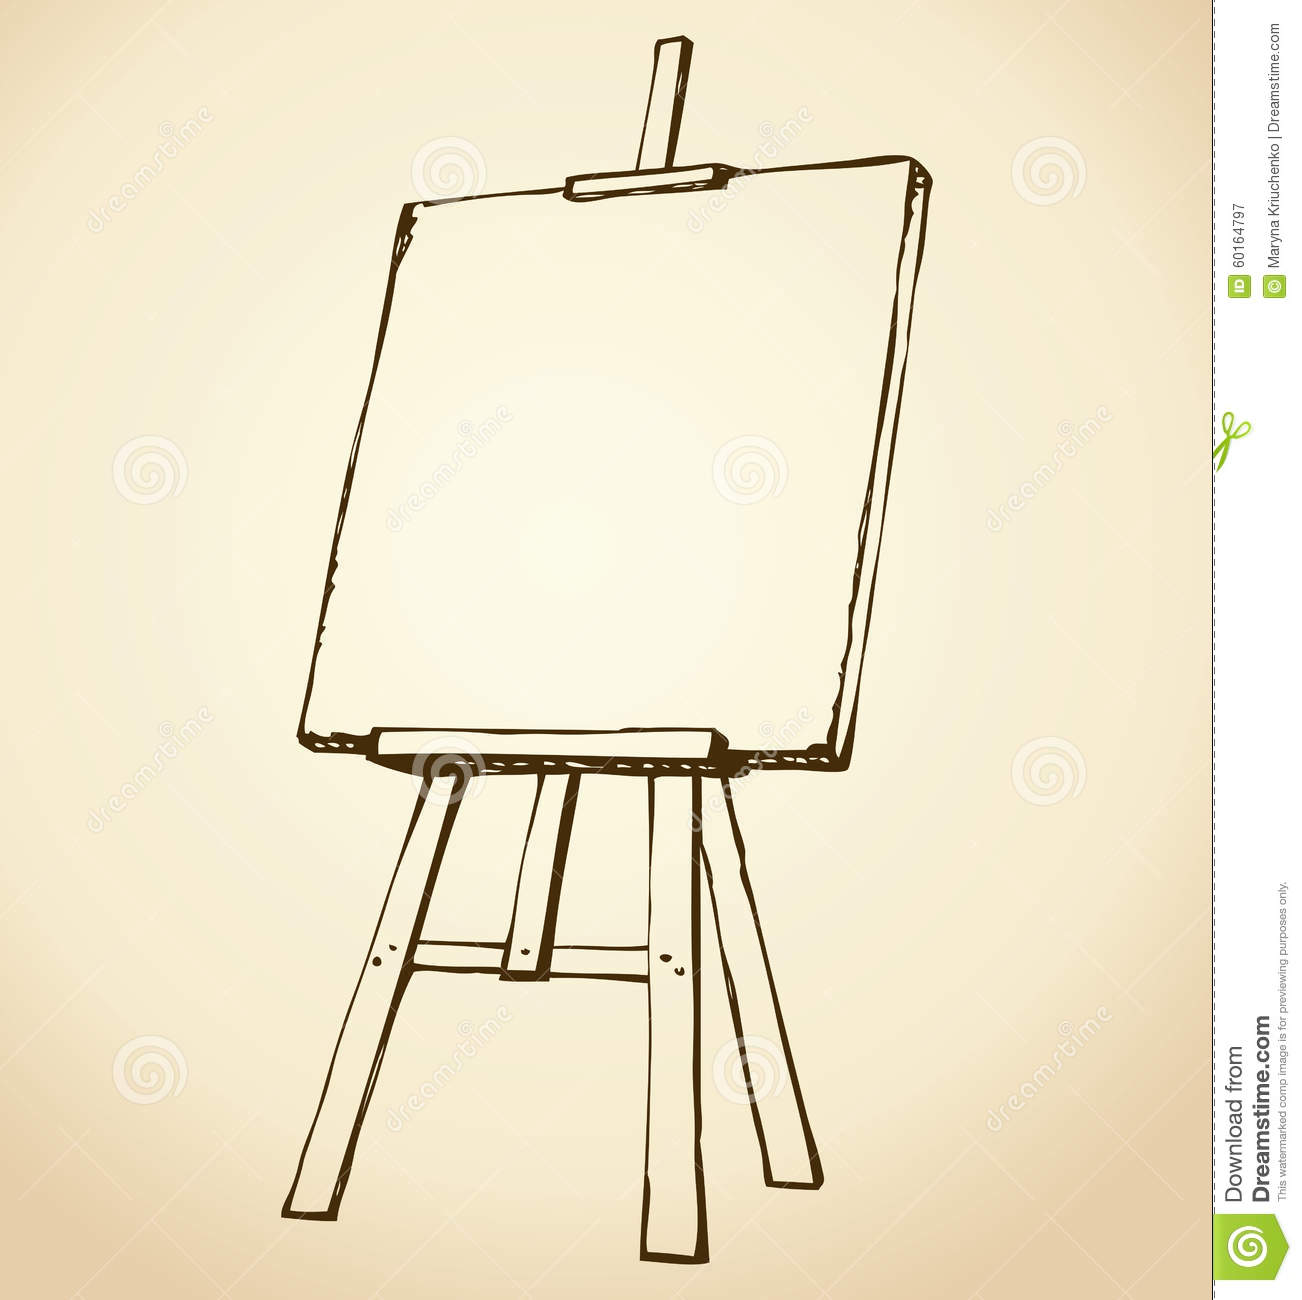 Drawing Lines In Jcanvas : Easel vector sketch stock image of chalkboard